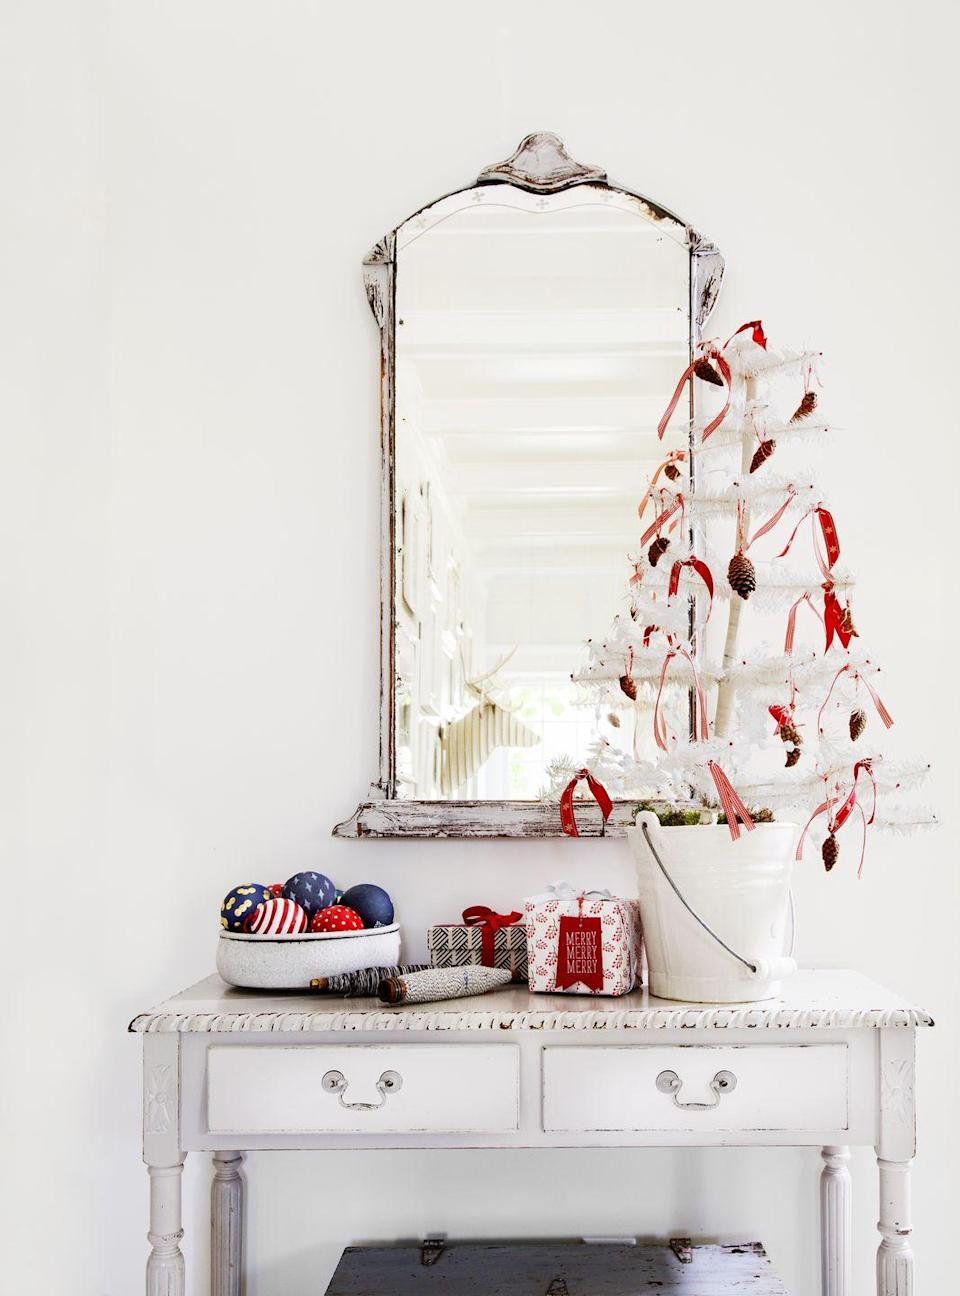 """<p>No ornaments? No problem! Ribbon provides a festive touch to each branch when tied in place with a simple knot. </p><p>Add additional texture with DIY <a href=""""https://www.countryliving.com/diy-crafts/how-to/g312/all-about-pinecones-1206/"""" rel=""""nofollow noopener"""" target=""""_blank"""" data-ylk=""""slk:pine cone"""" class=""""link rapid-noclick-resp"""">pine cone</a> ornaments. To make: Wrap baker's twine around the circumference of a pine cone and then tie the ends together creating a loop for hanging. </p><p><a class=""""link rapid-noclick-resp"""" href=""""https://www.amazon.com/Tenn-Well-Butchers-Christmas-Wrapping/dp/B01MYUWR9S/ref=sr_1_4?tag=syn-yahoo-20&ascsubtag=%5Bartid%7C10050.g.28703522%5Bsrc%7Cyahoo-us"""" rel=""""nofollow noopener"""" target=""""_blank"""" data-ylk=""""slk:SHOP BAKER'S TWINE"""">SHOP BAKER'S TWINE</a></p>"""